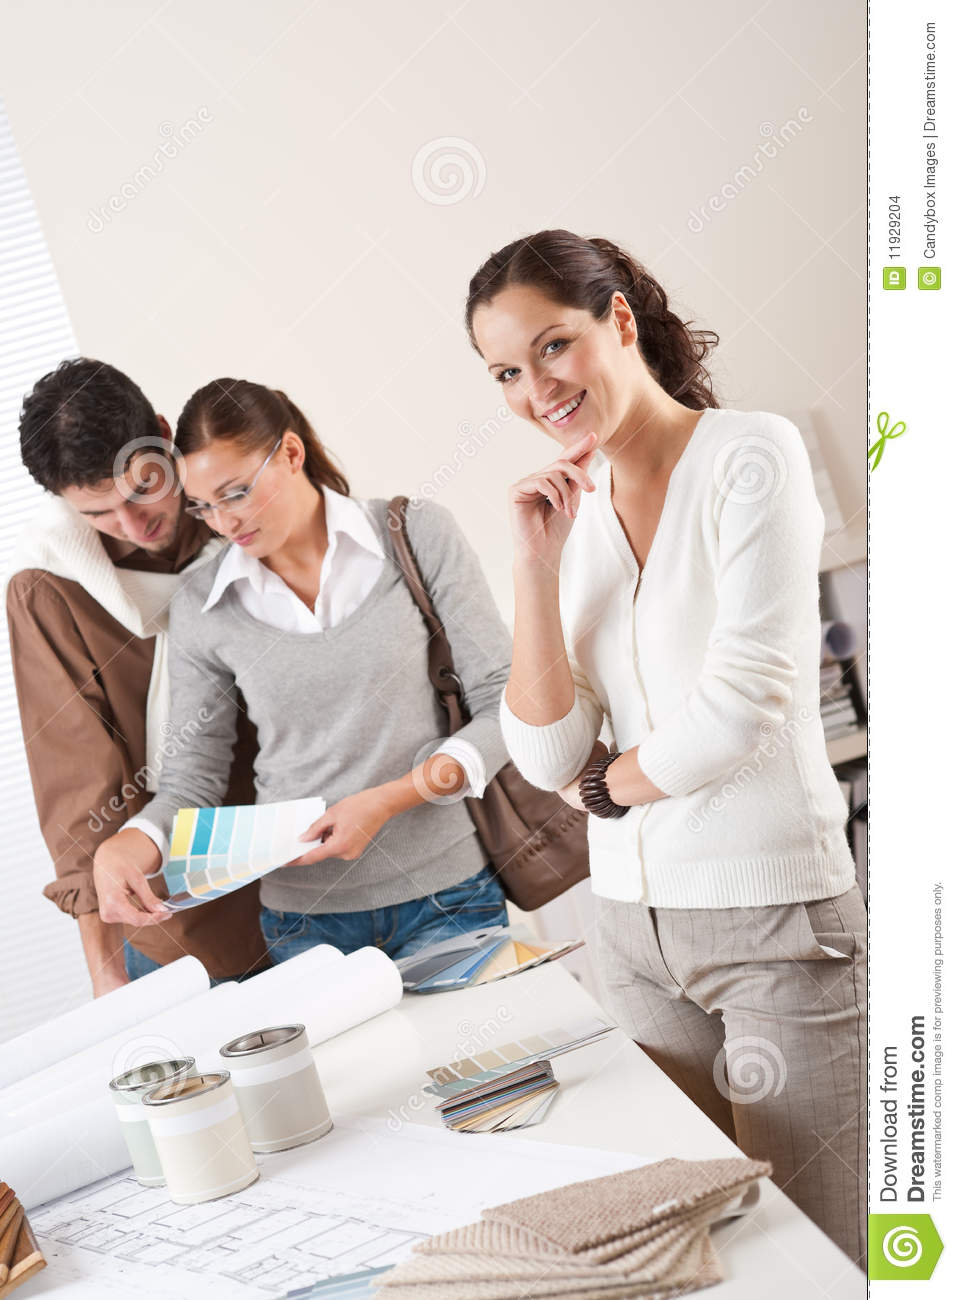 Female Interior Designer With Two Clients Stock Images ...